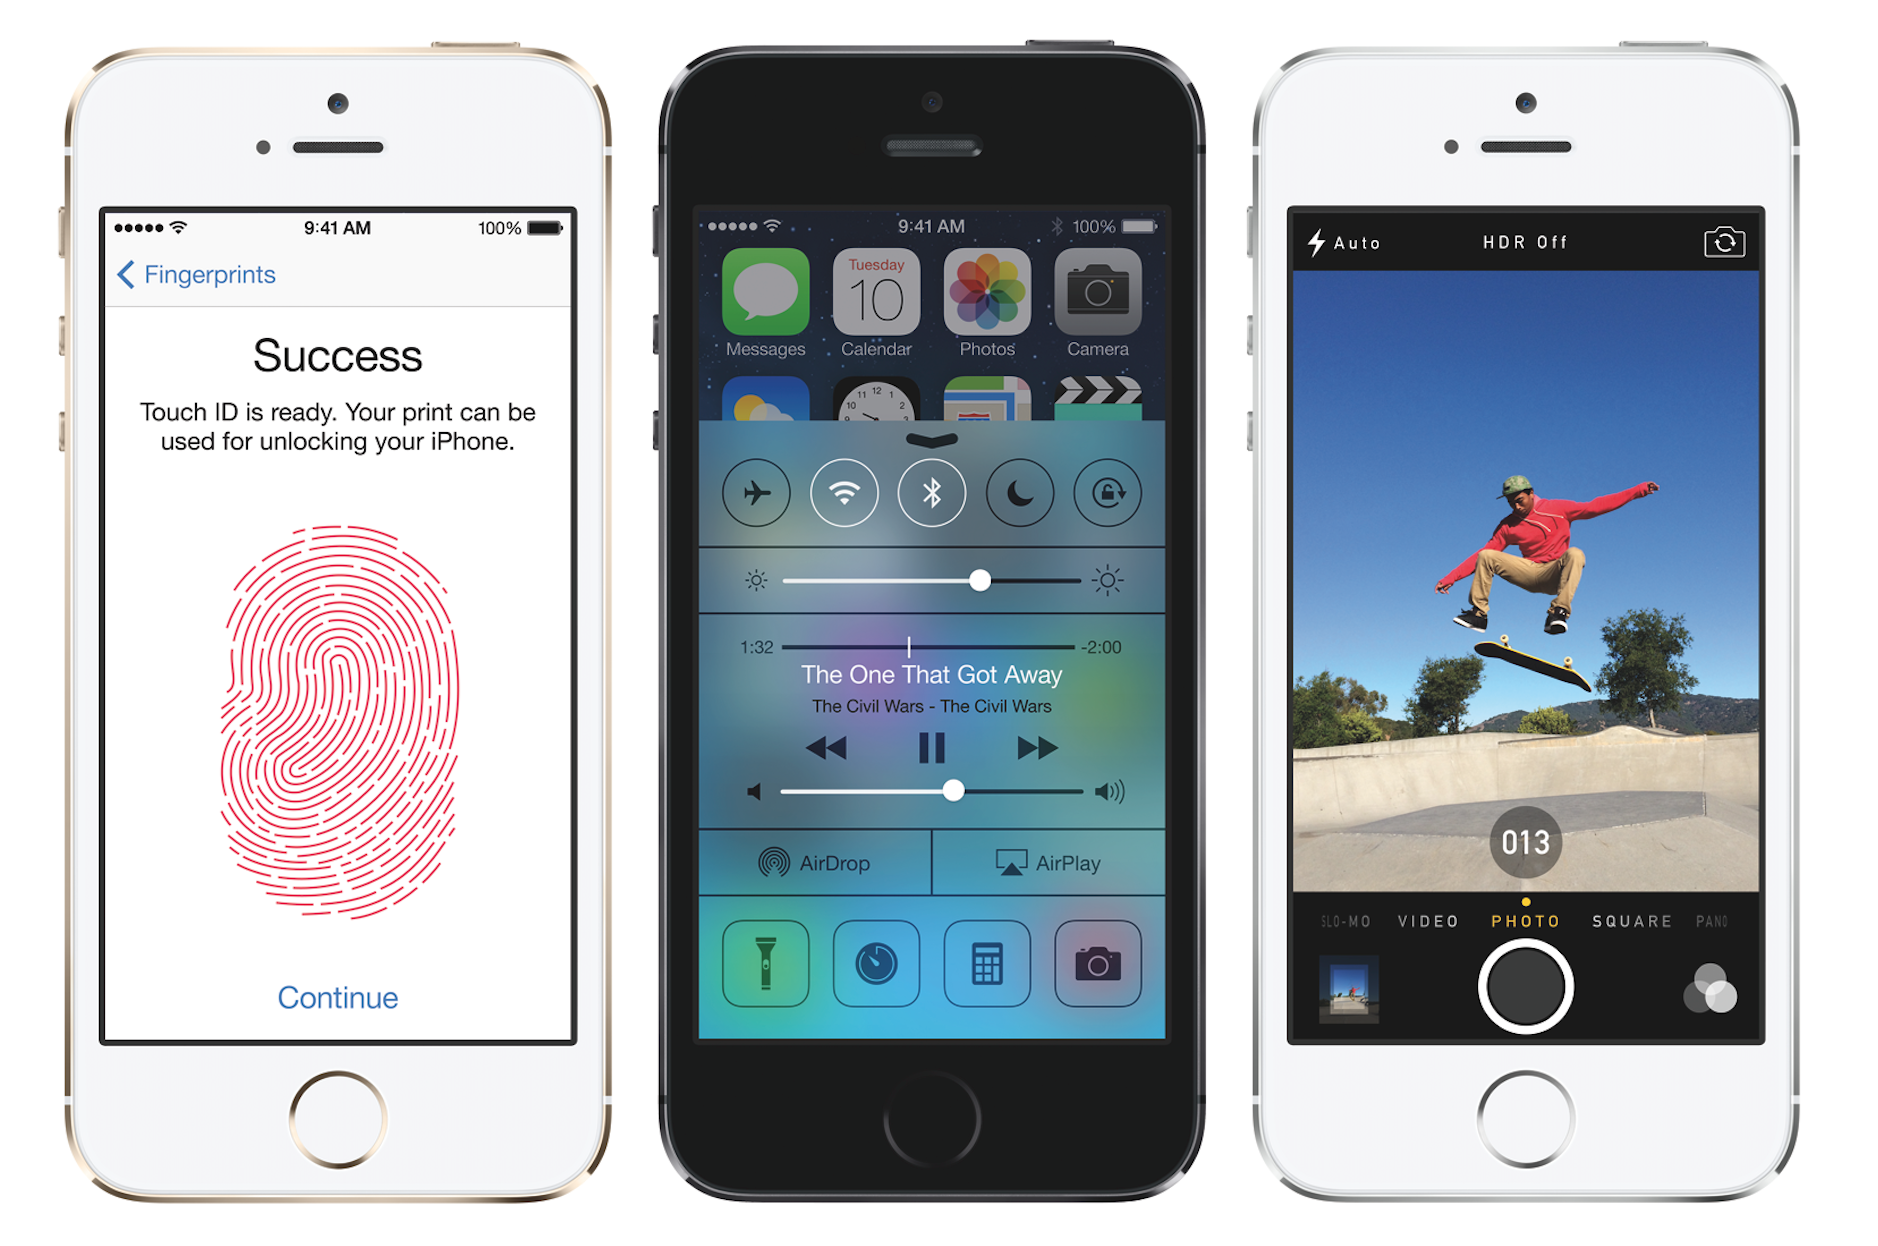 RadioShack is selling the iPhone 5s for $99 with a two-year contract, $100 off of its regular price.